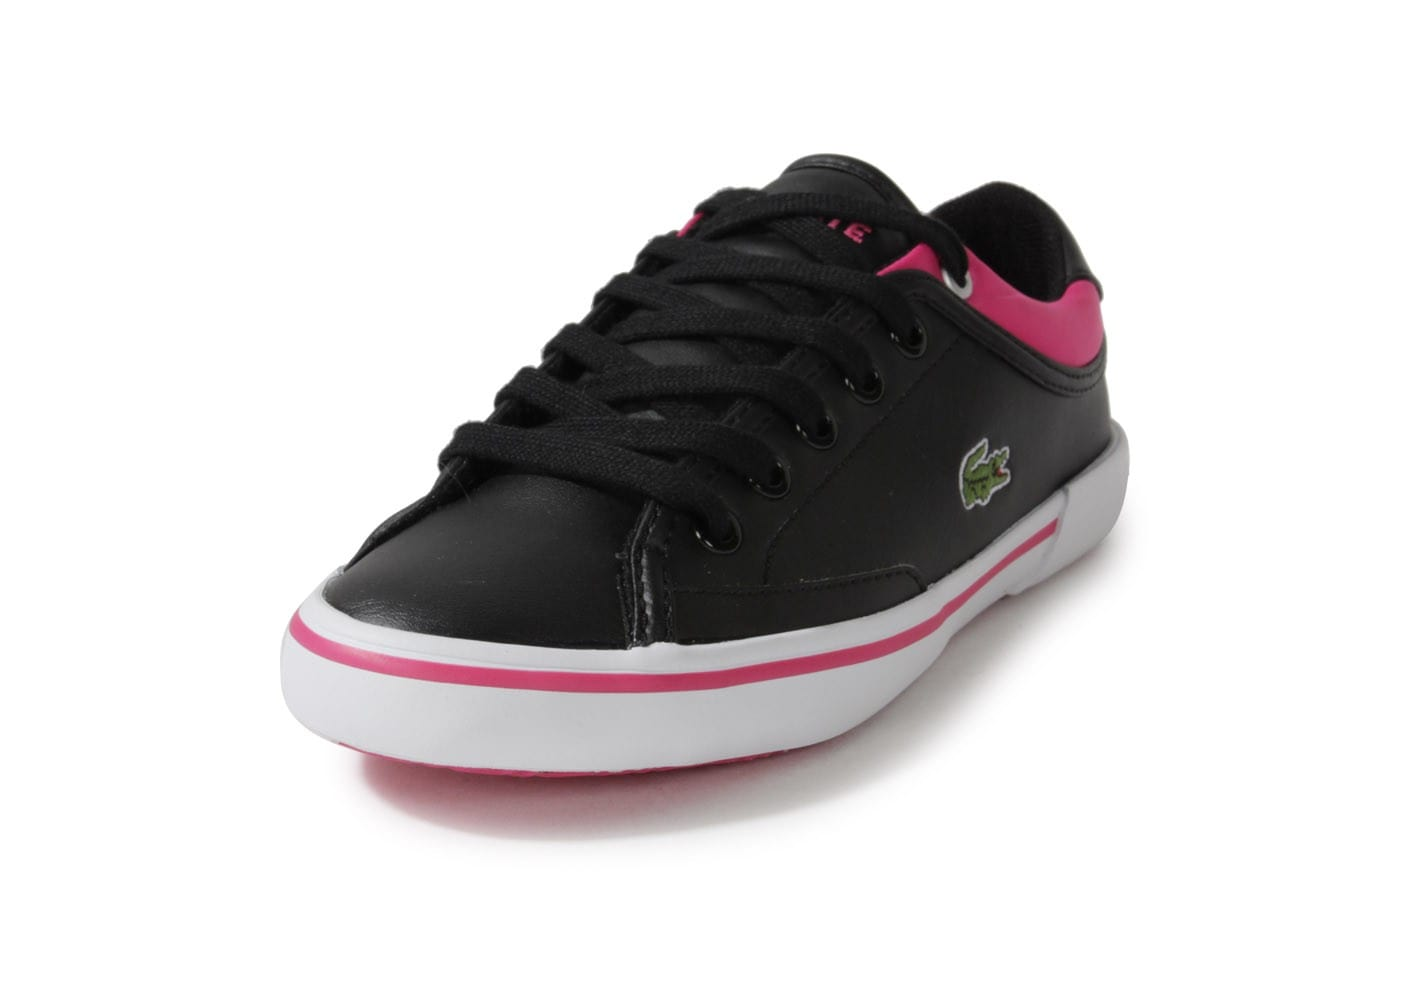 lacoste angha enfant noir rose chaussures chaussures. Black Bedroom Furniture Sets. Home Design Ideas